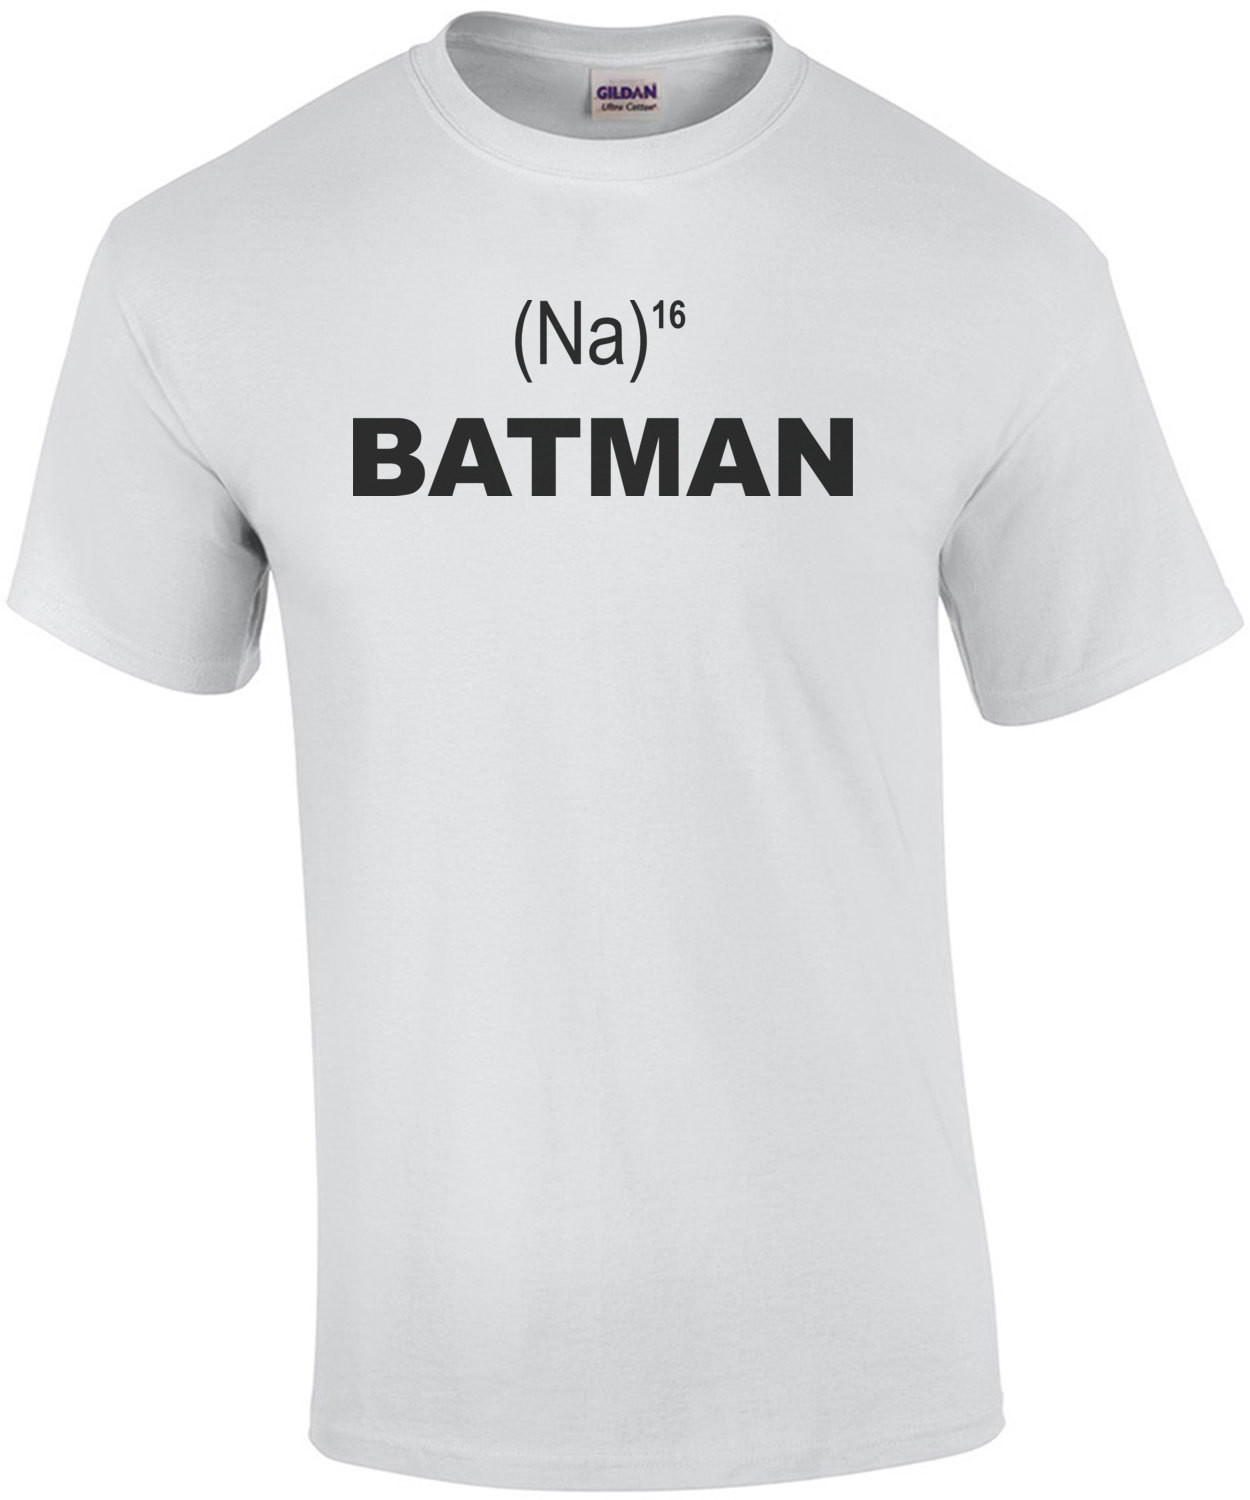 Na To The 16th Power Batman Shirt